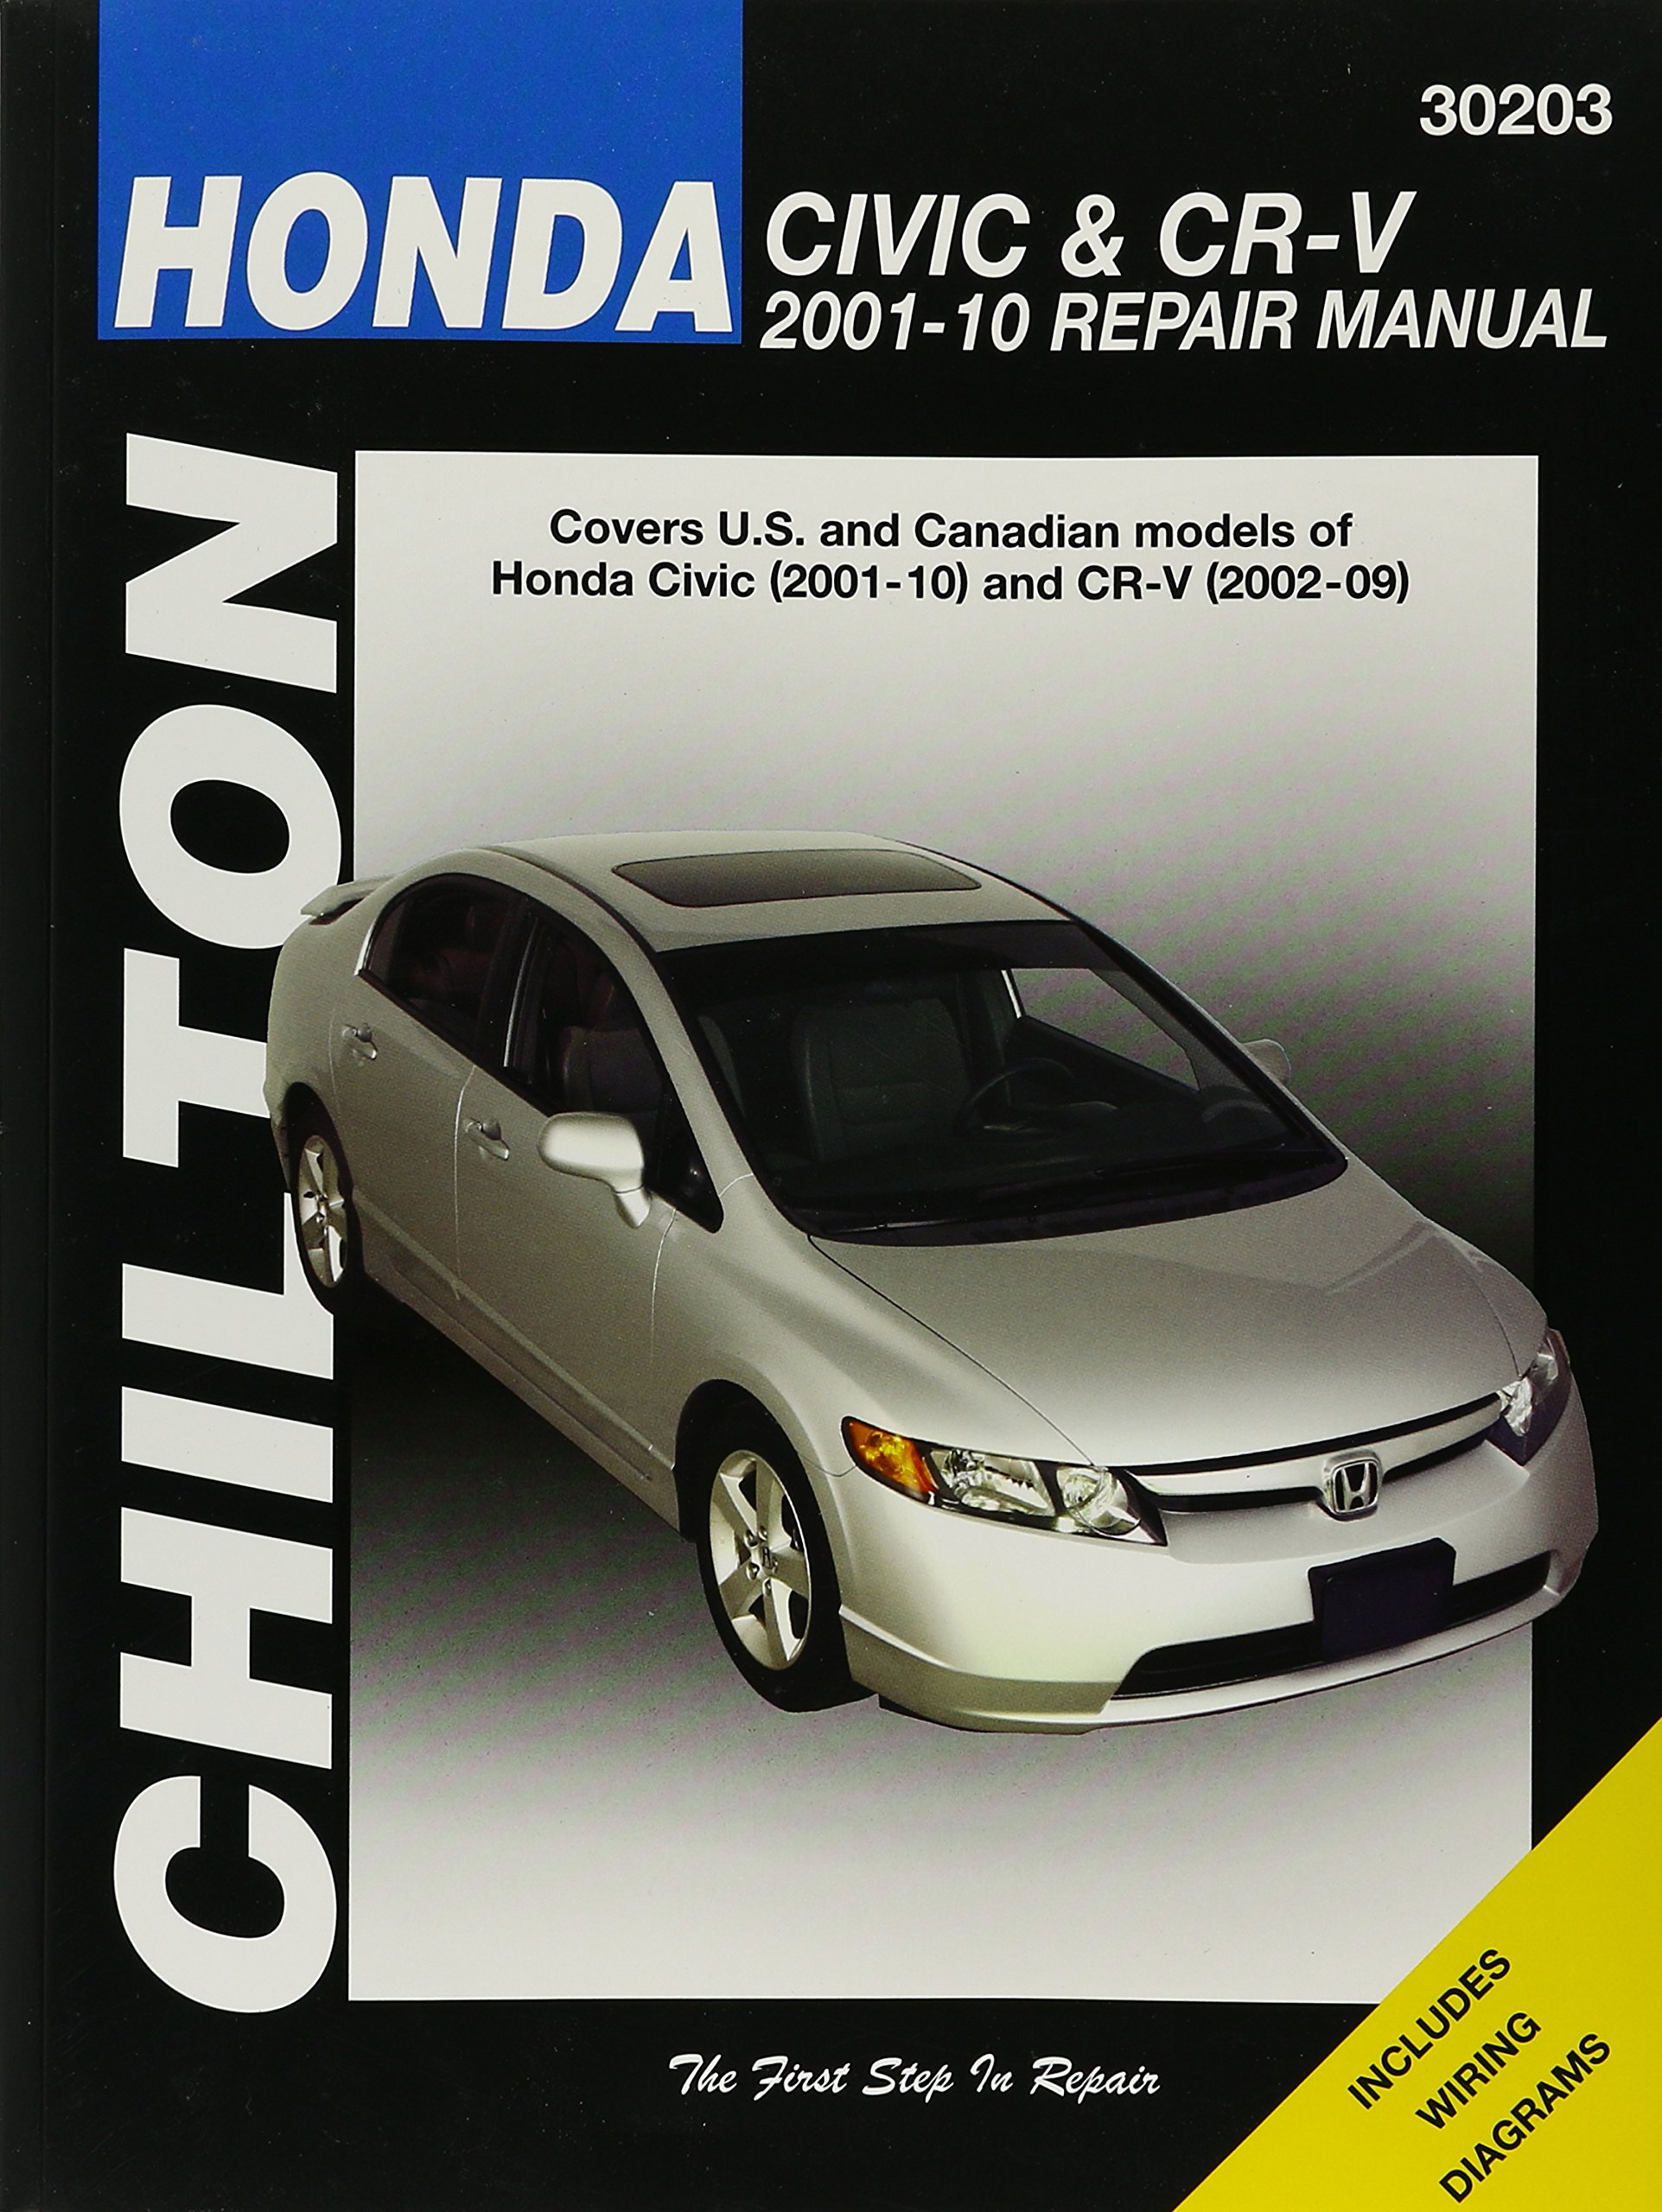 Honda Civic 2001-2010 & CR-V 2002-2009 (Chilton's Total Car